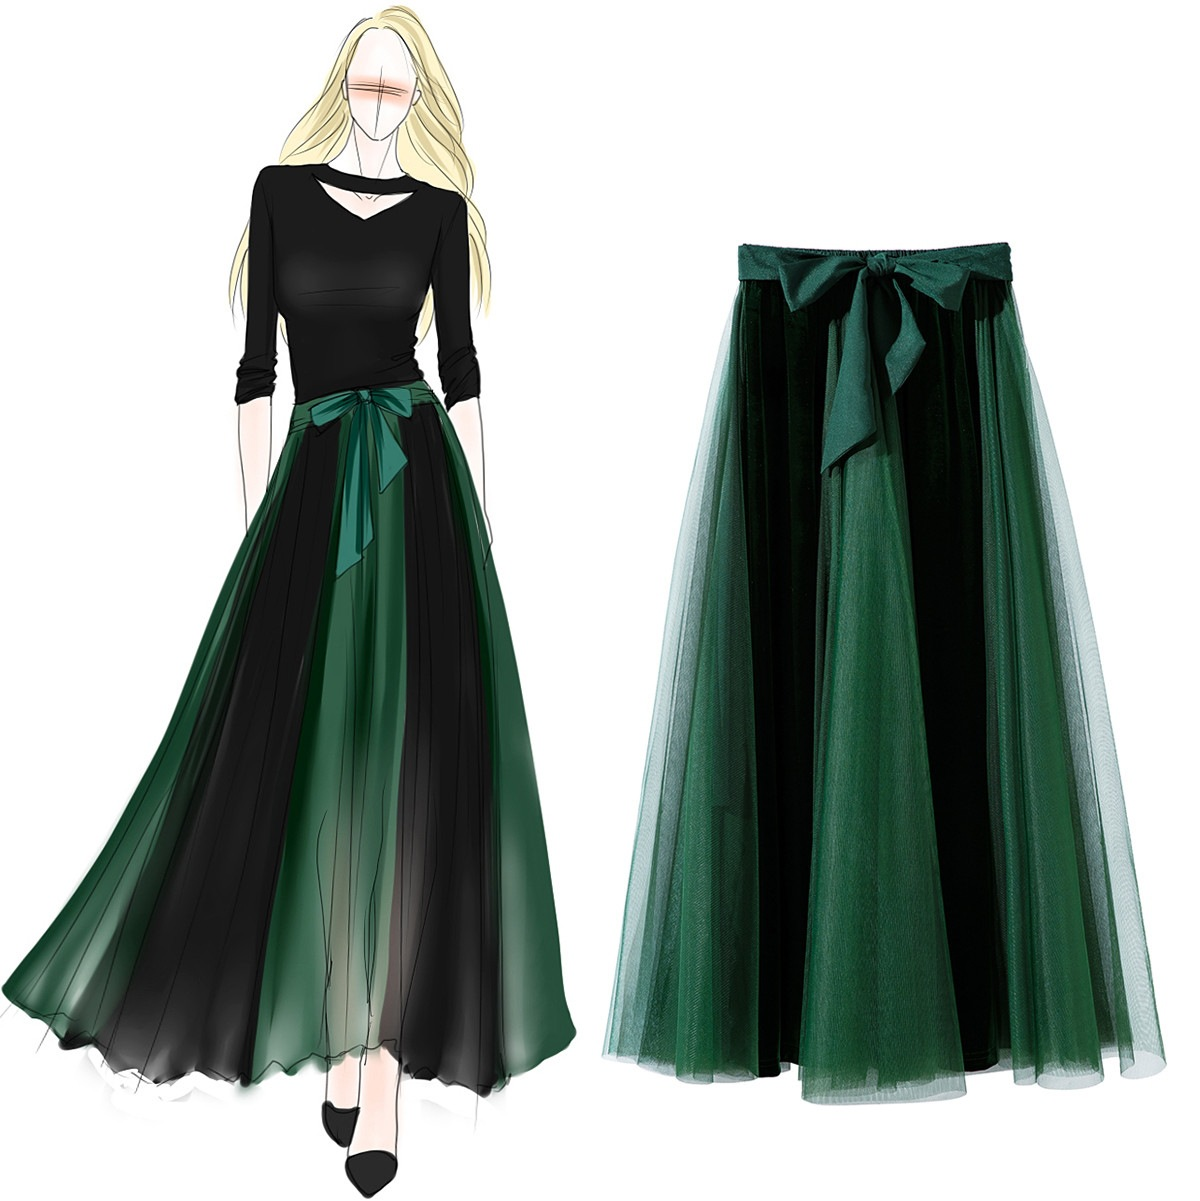 2019 Fashion Spring Summer New-Coming European High Elasticity Pleated Street Style Women Long Skirts